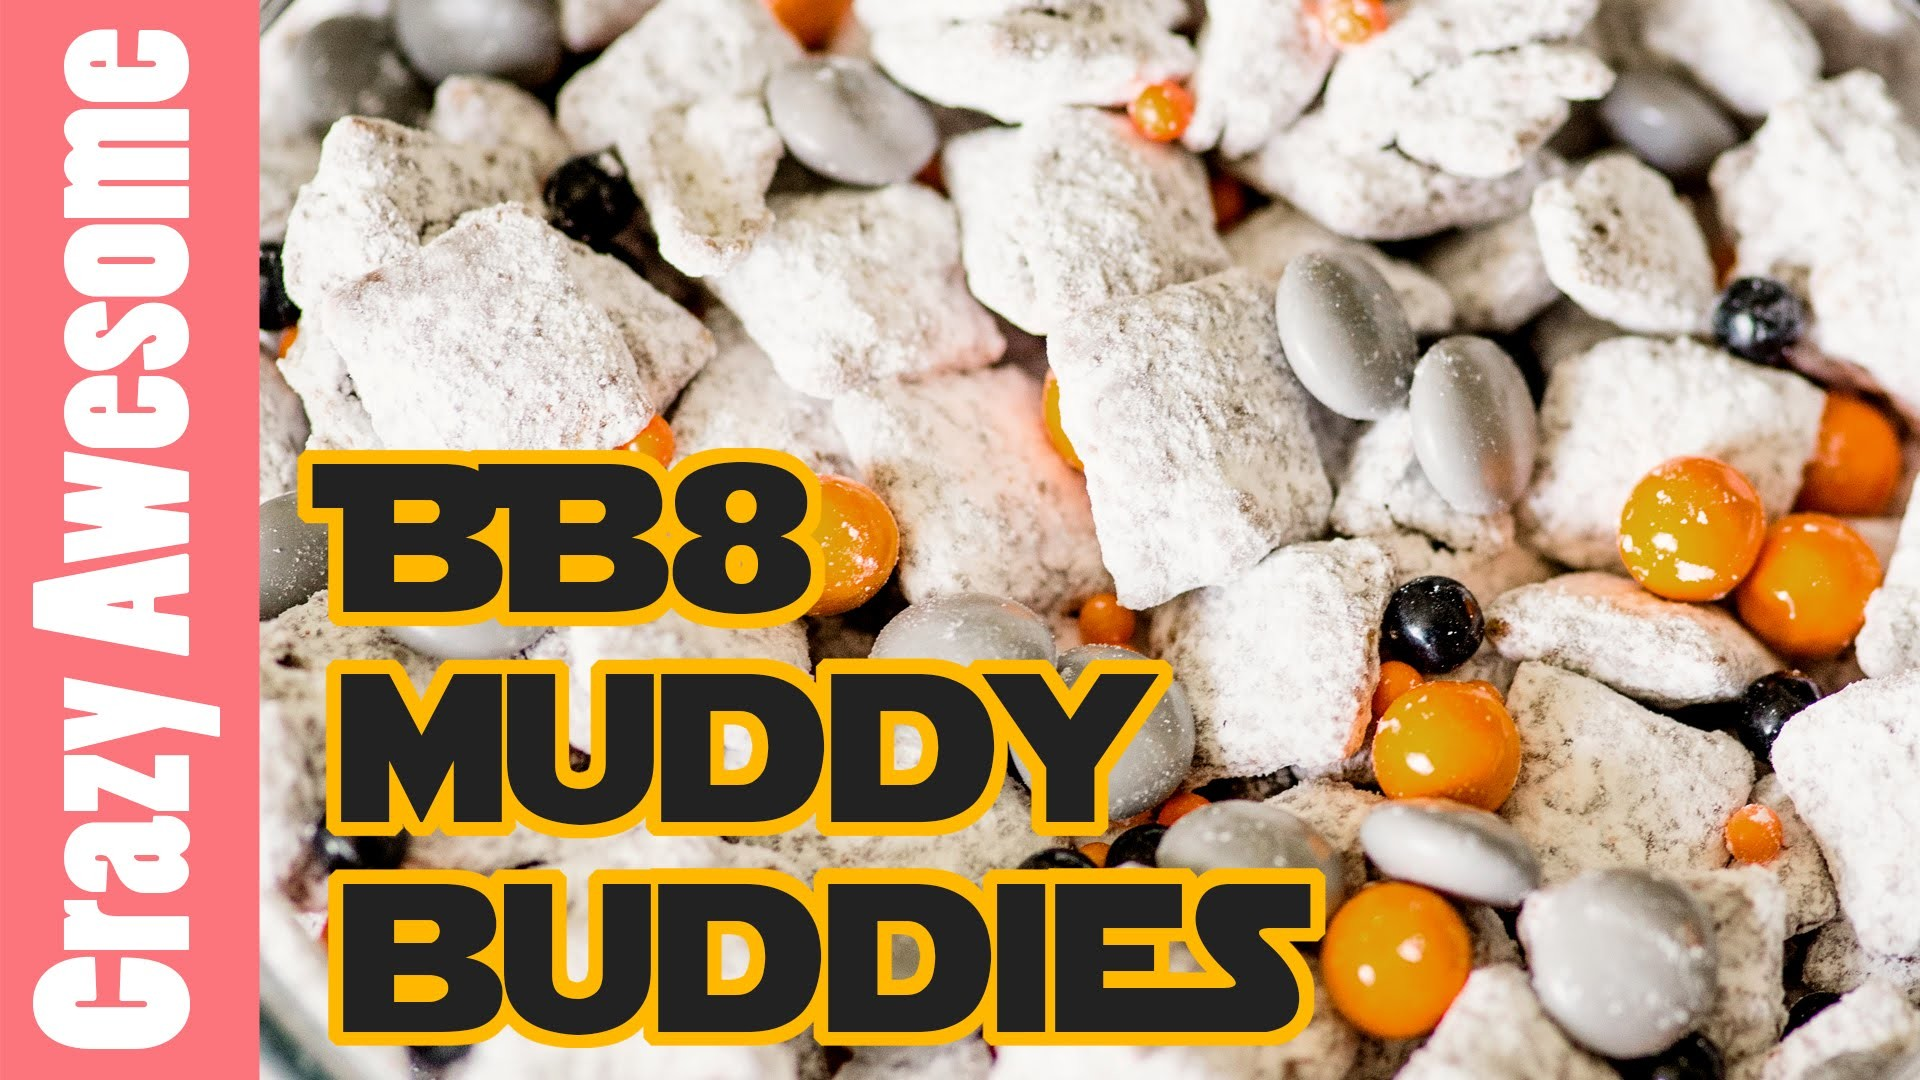 How to make bb8 muddy buddies - Star Wars Party Food